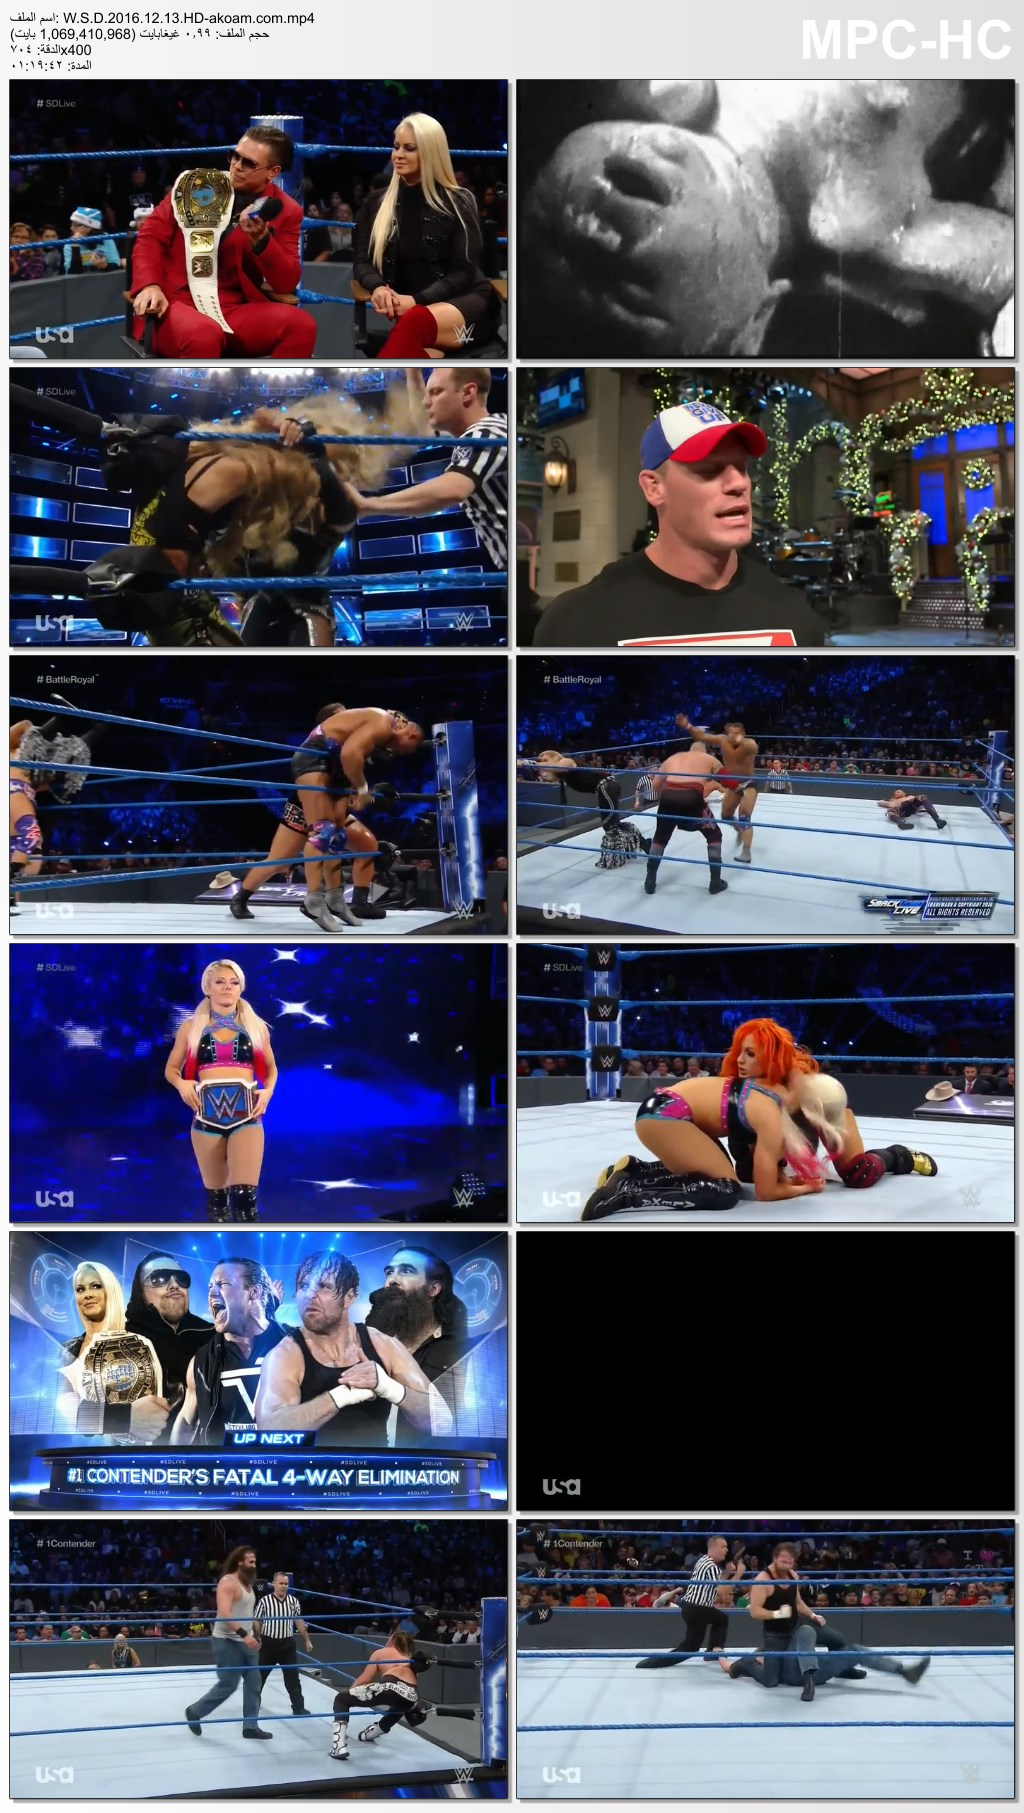 WWE Smackdown Live 2016,WWE,Smackdown Live 2016